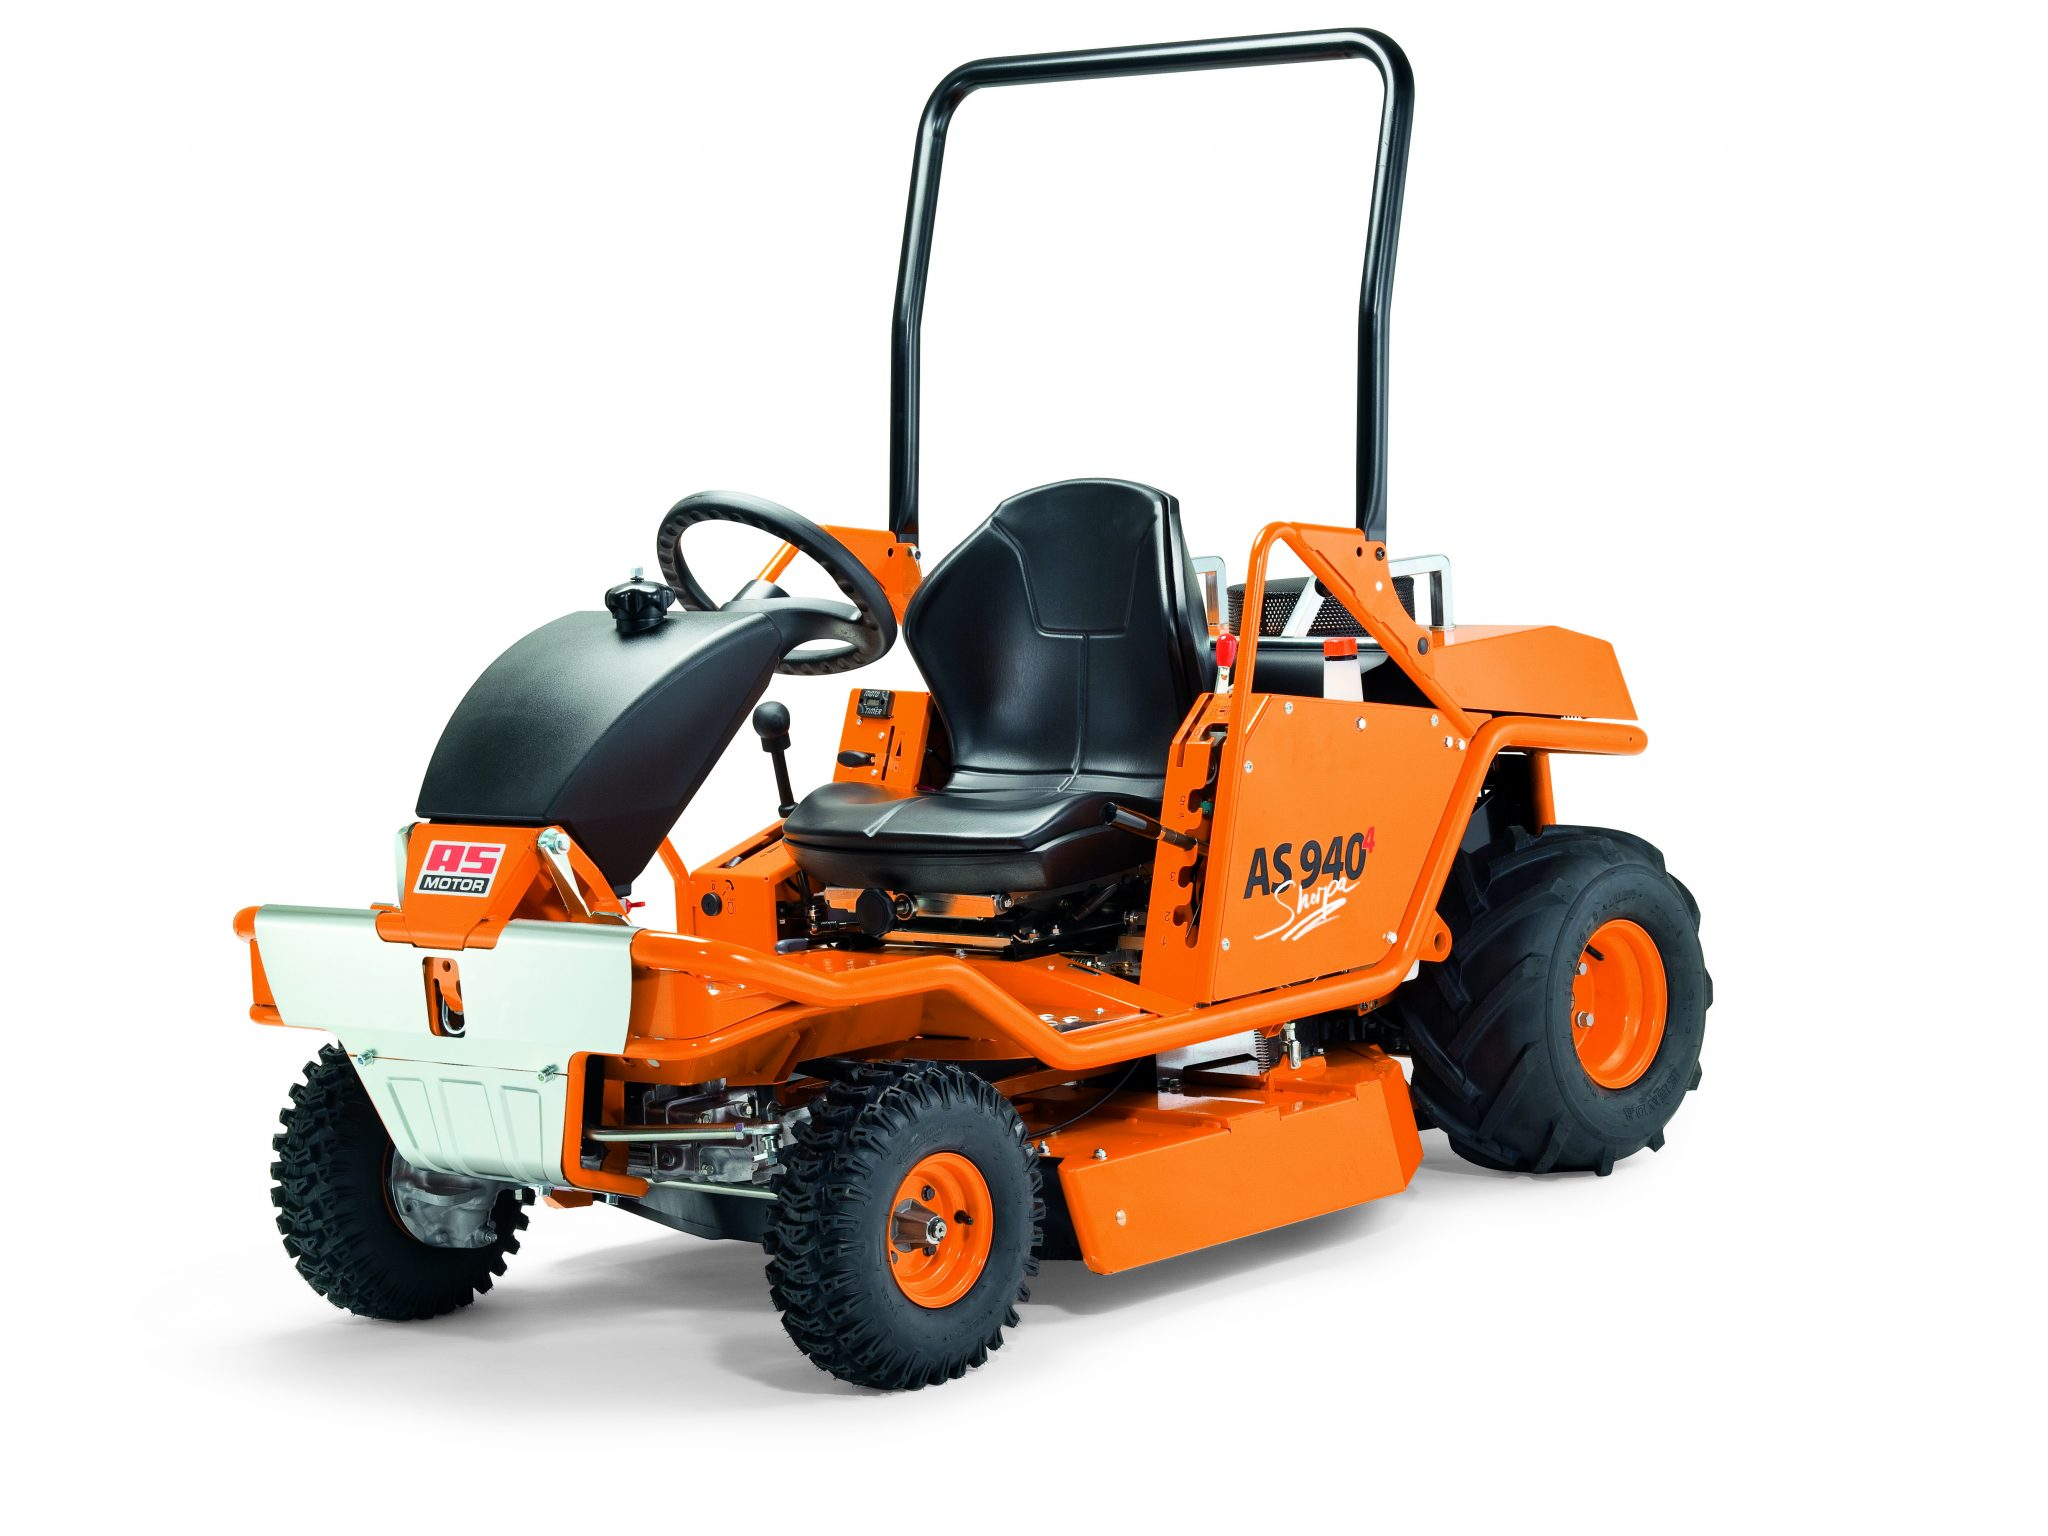 AS Motor 940 Sherpa 4WD Remote control Ride-on Mower Image